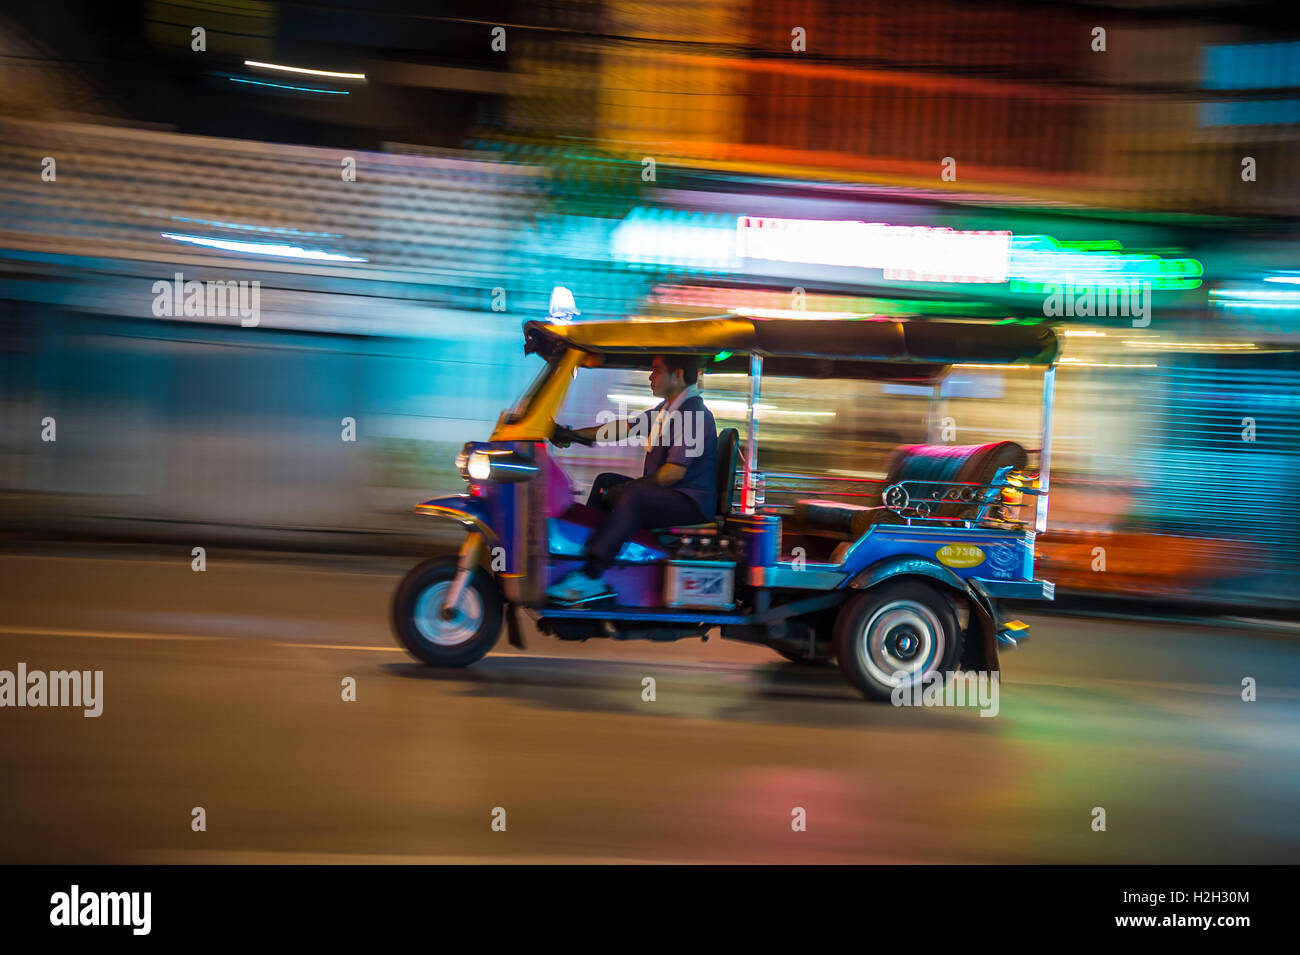 BANGKOK - NOVEMBER 18, 2014: A motorized tuktuk, the ubiquitous local transportation, drives at night looking for - Stock Image